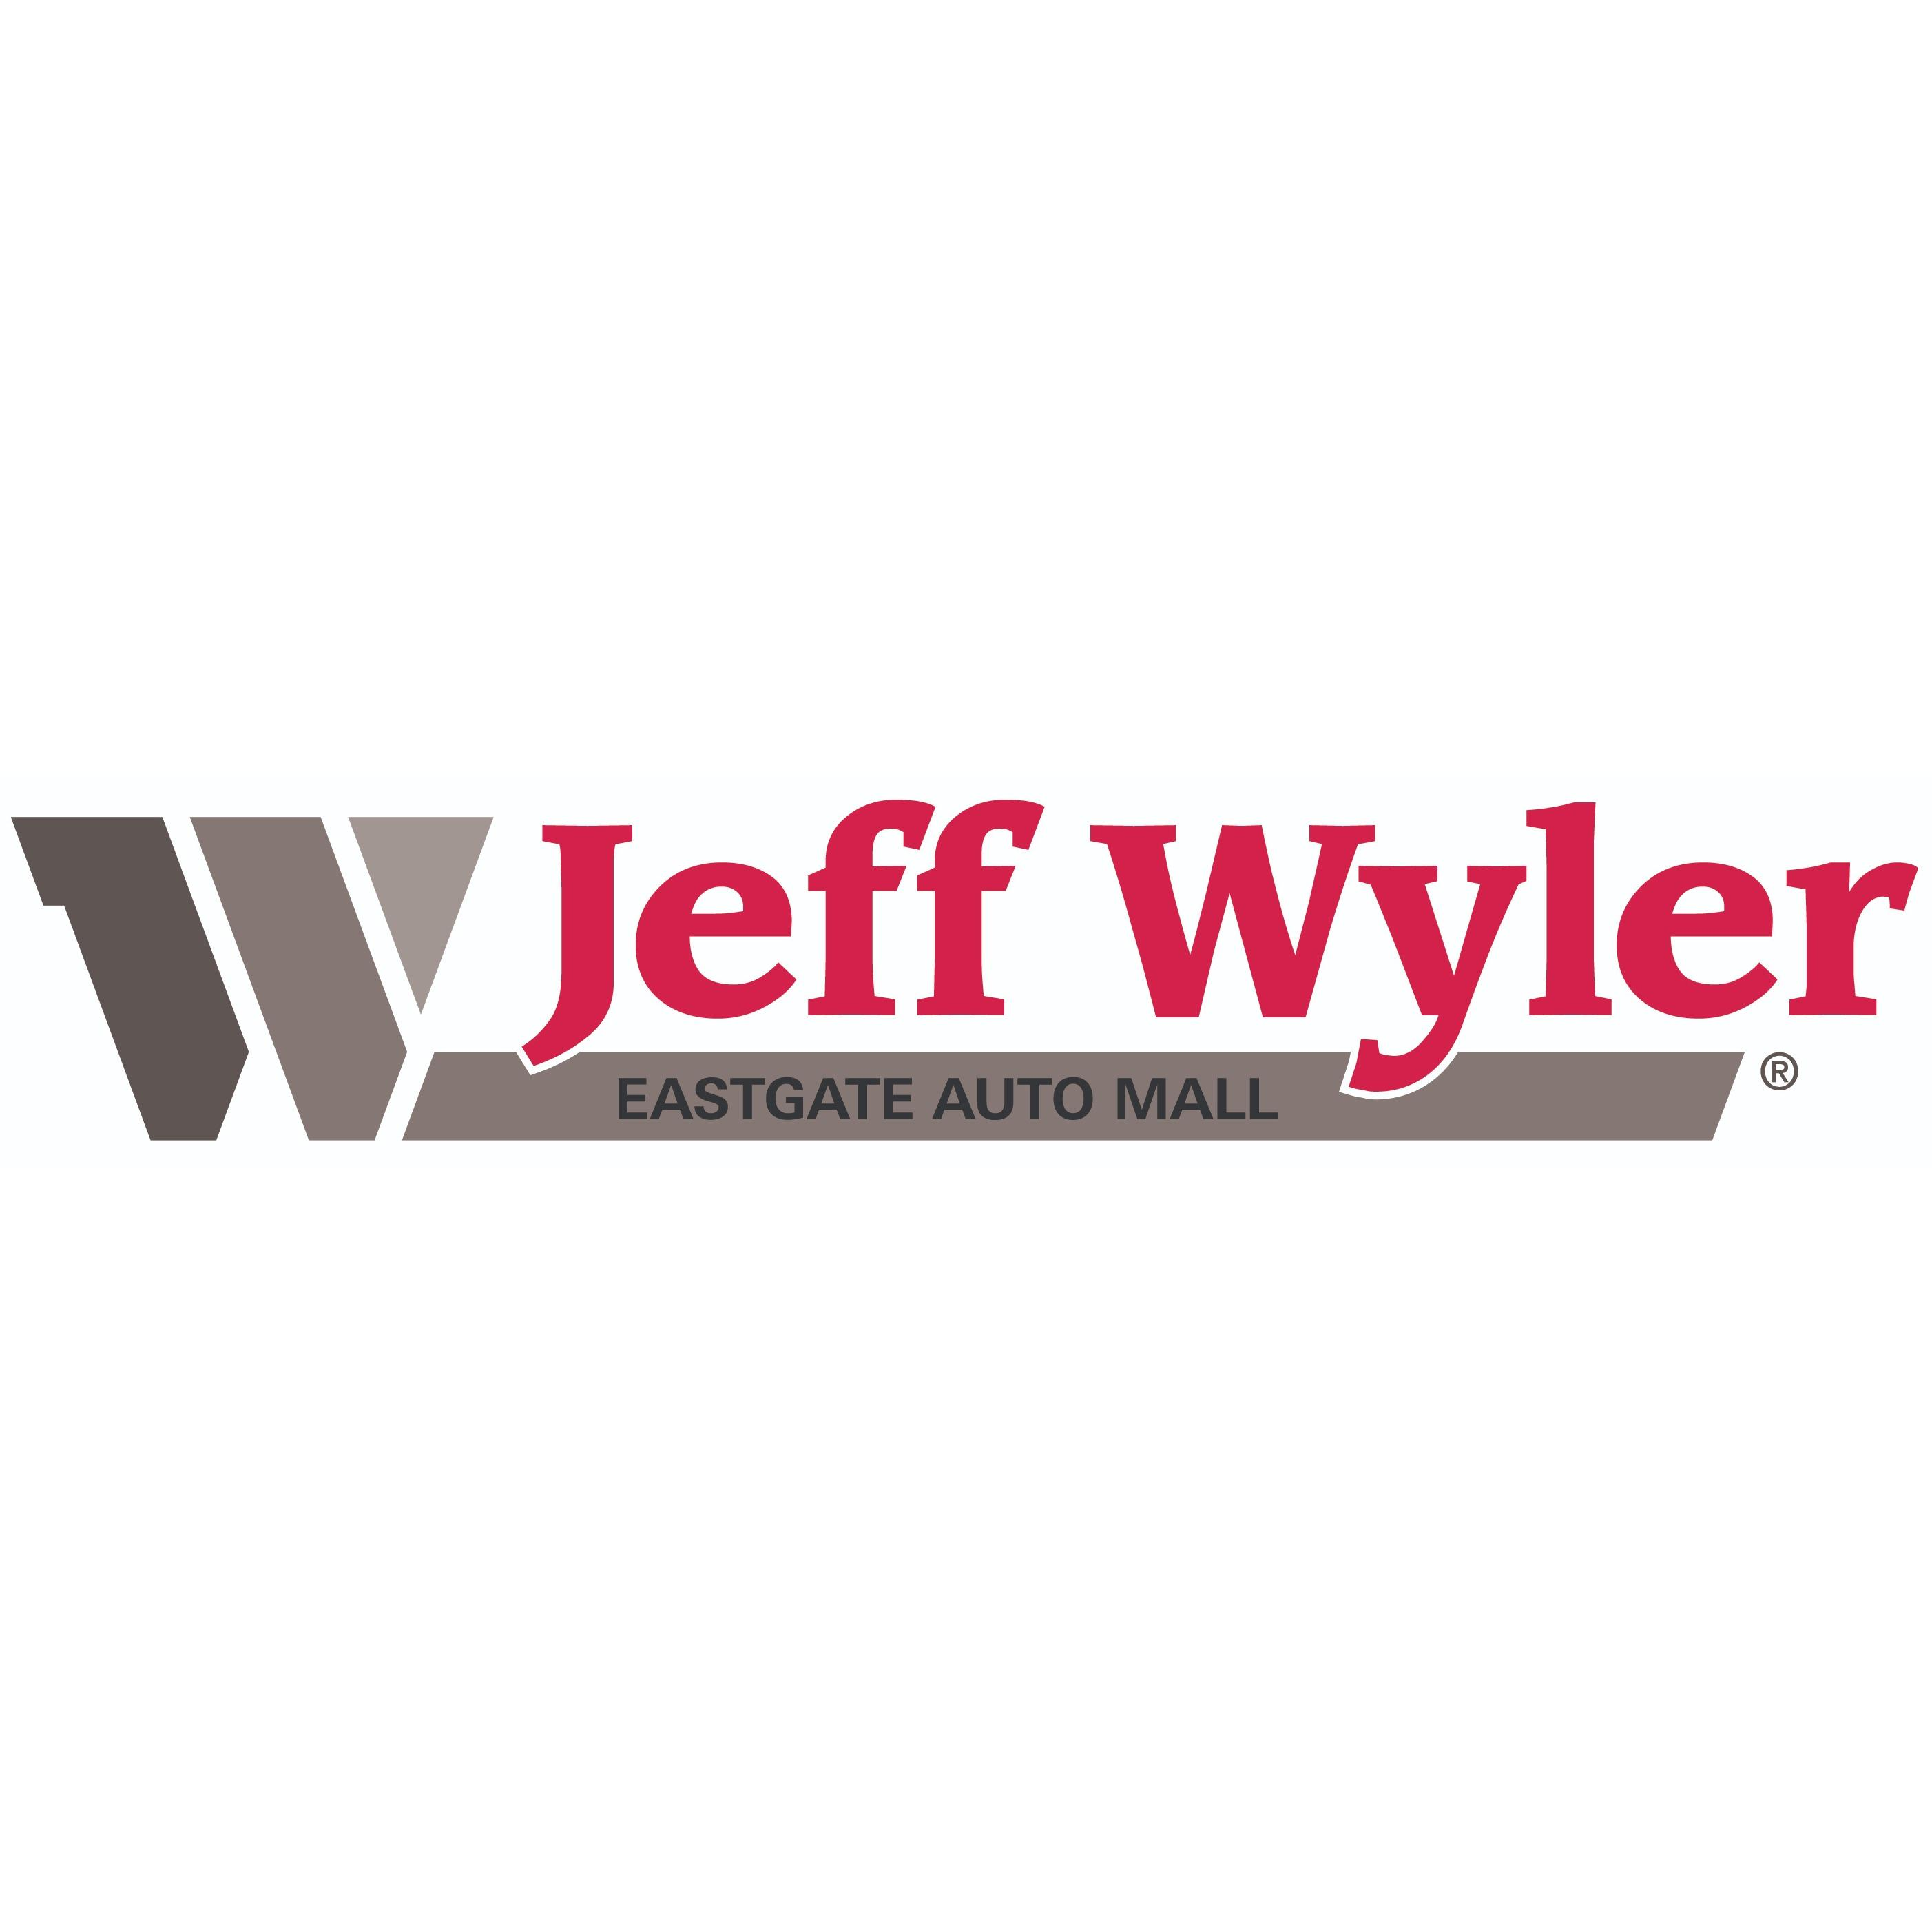 Jeep Dealers Dayton Ohio >> Jeff Wyler Eastgate Auto Mall 1117 State Route 32 Jeff Wyler Eastgate Auto Mall 1117 State Route ...